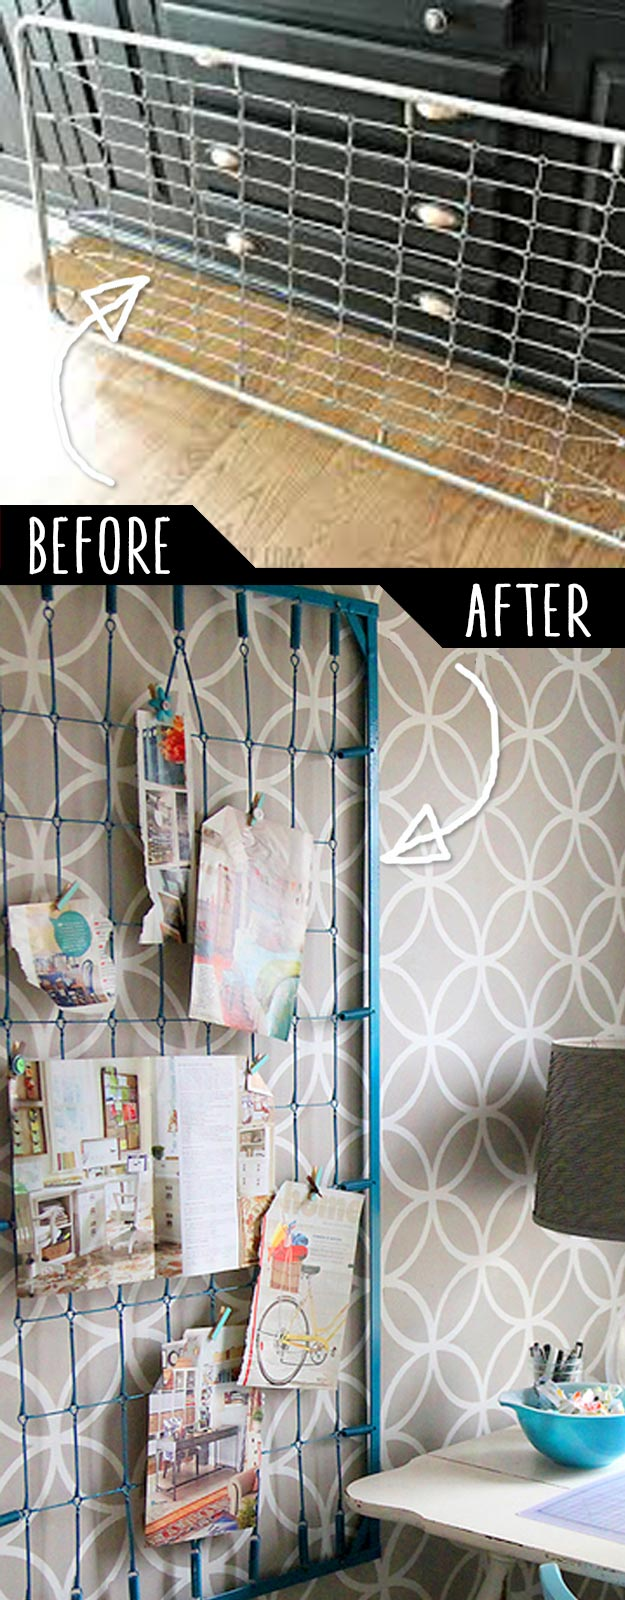 DIY Furniture Hacks   Old Crib Spring to Wall Memo Board   Cool Ideas for Creative Do It Yourself Furniture Made From Things You Might Not Expect #diy